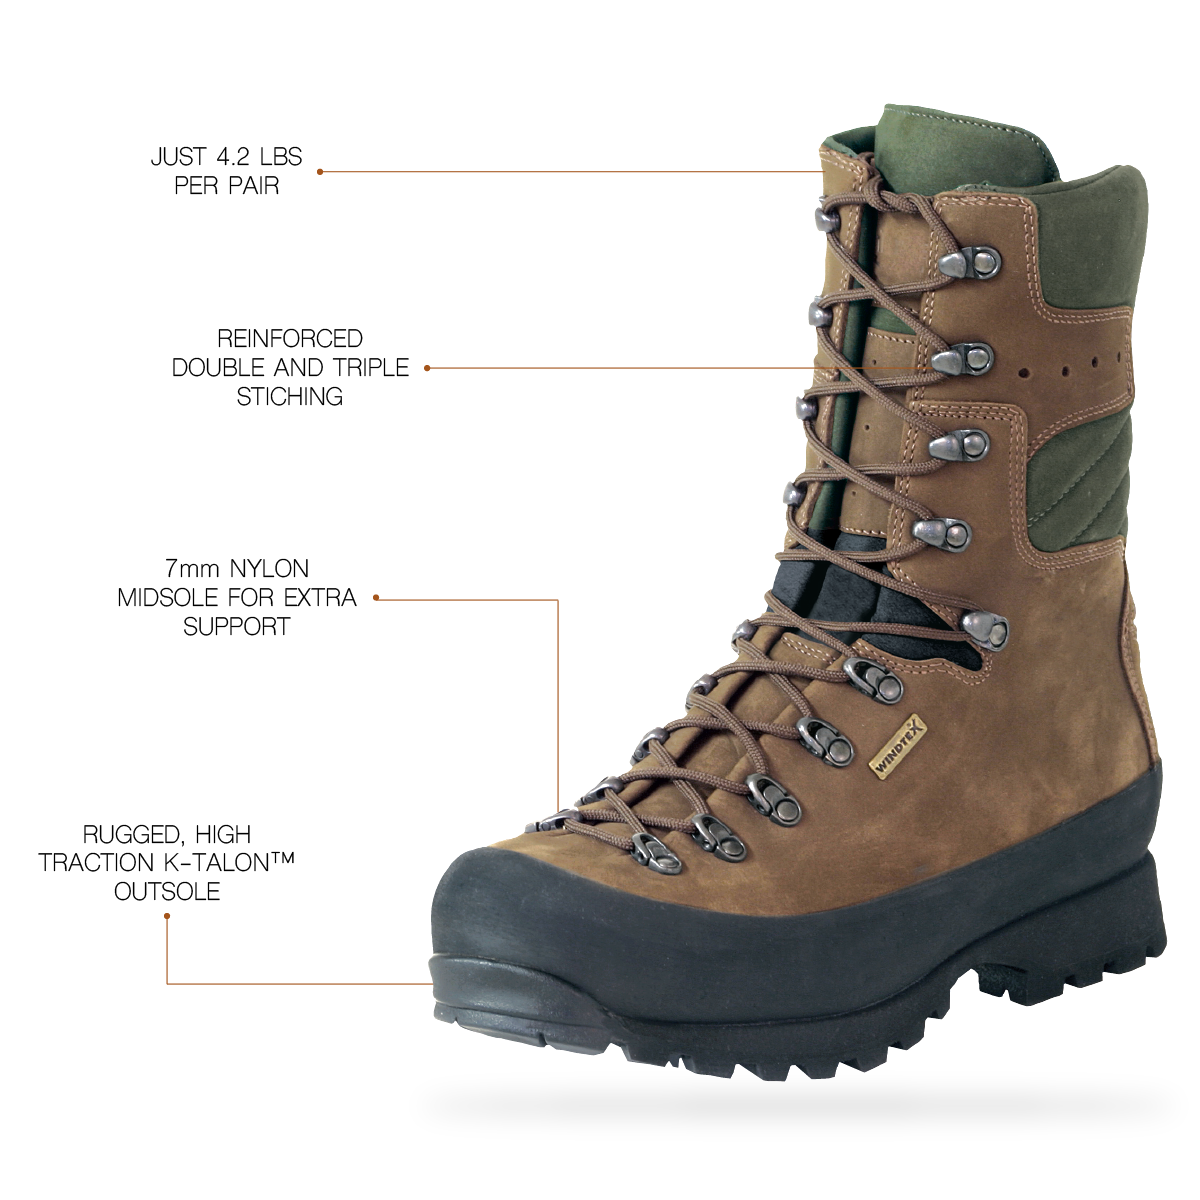 Hunter clipart hunting boot. Kenetrek boots mountain extreme